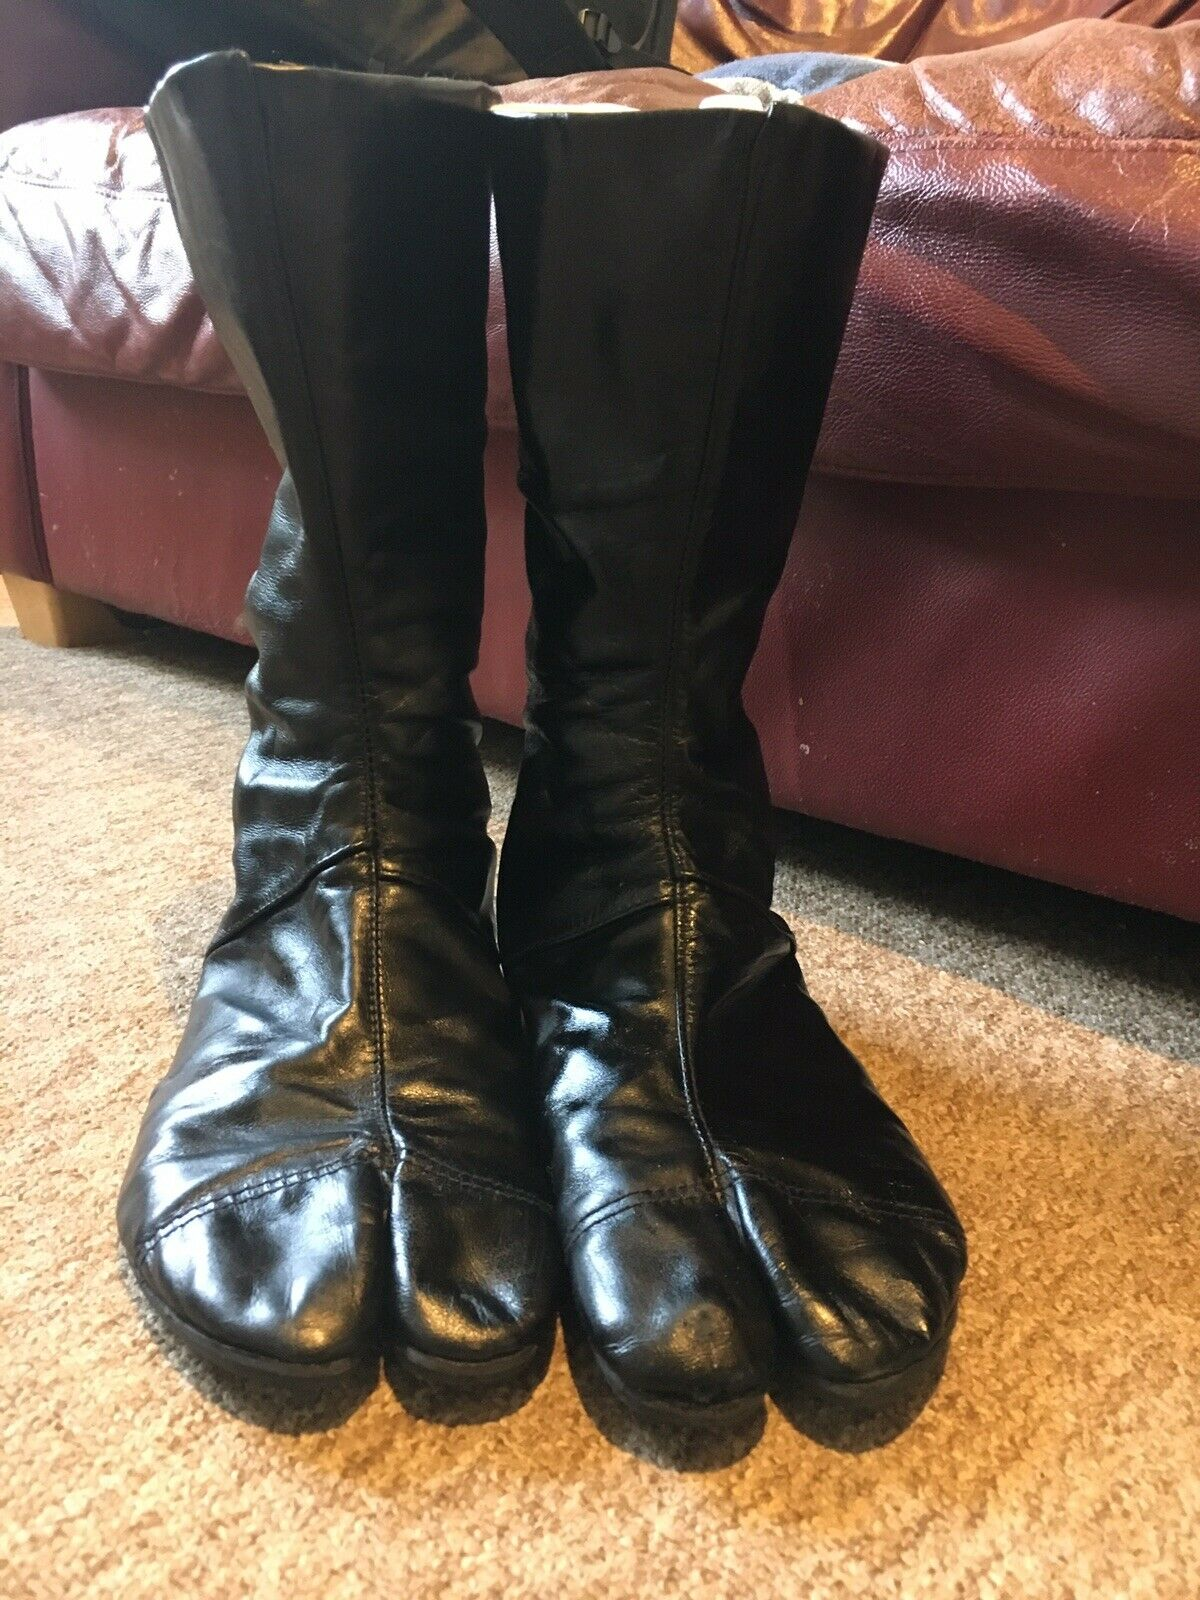 Japanese Boots Black Leather Look Size 26 7 UK